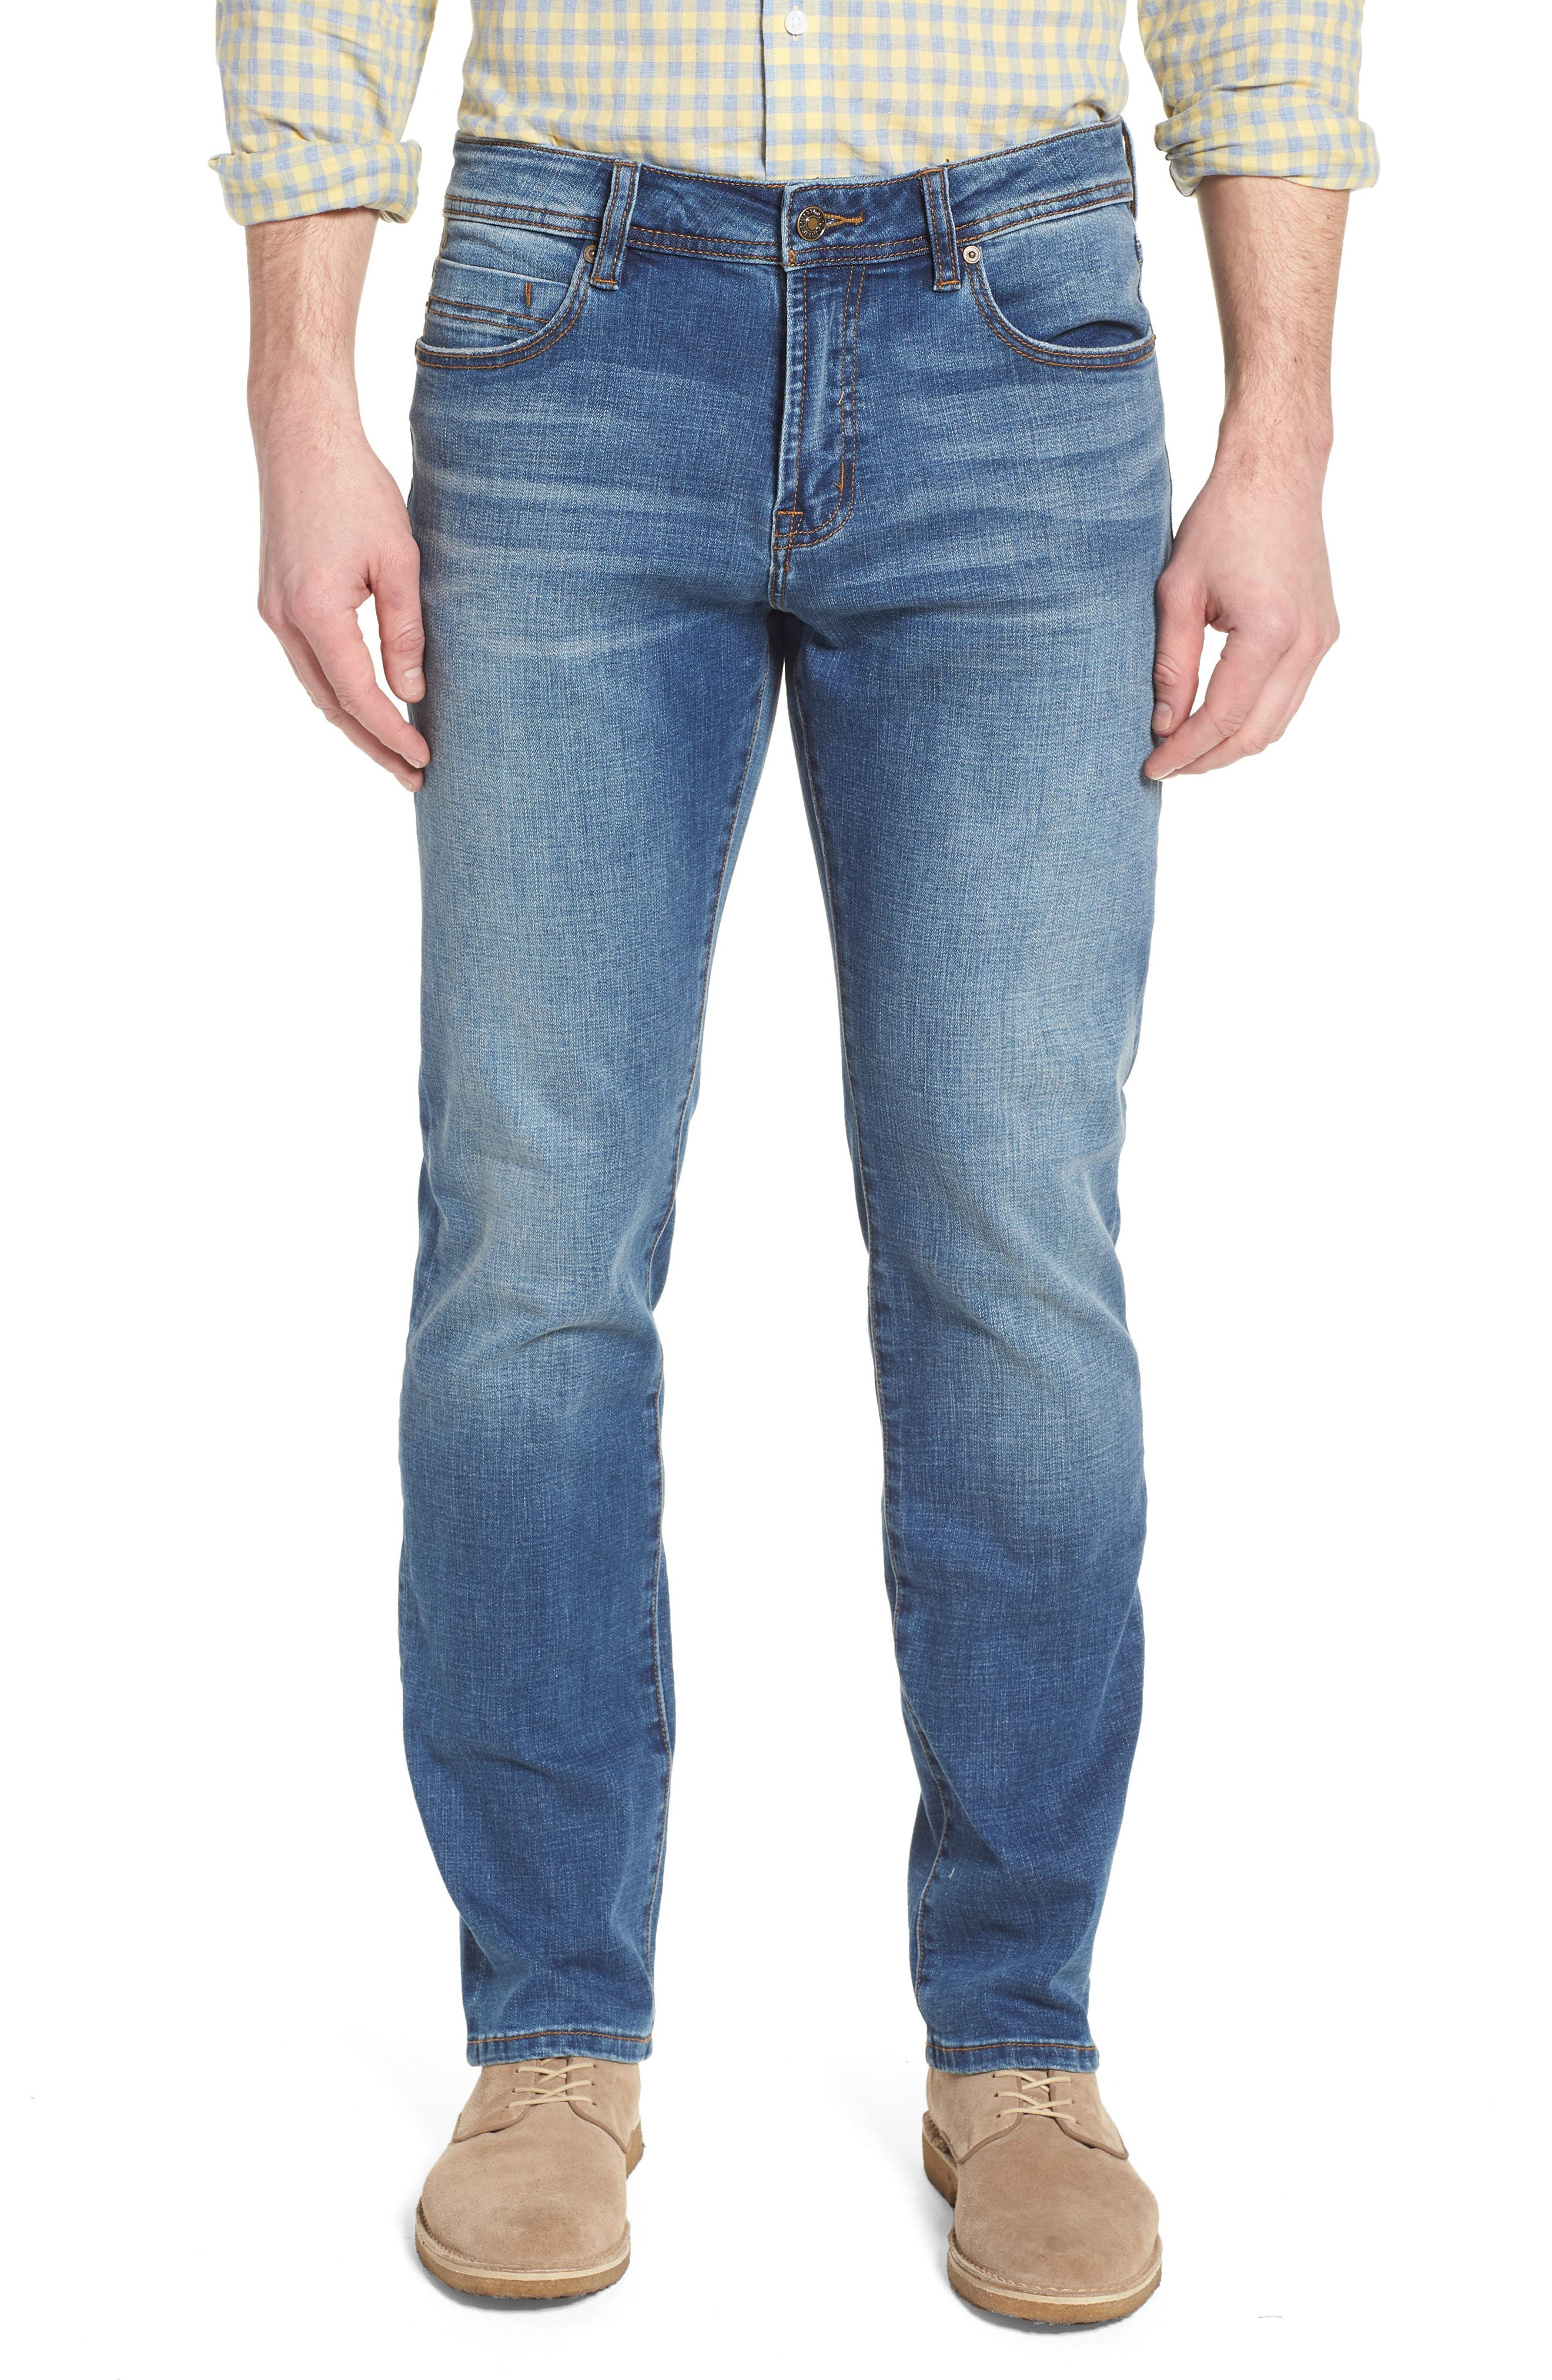 Jeans Co. Regent Relaxed Straight Leg Jeans,                             Main thumbnail 1, color,